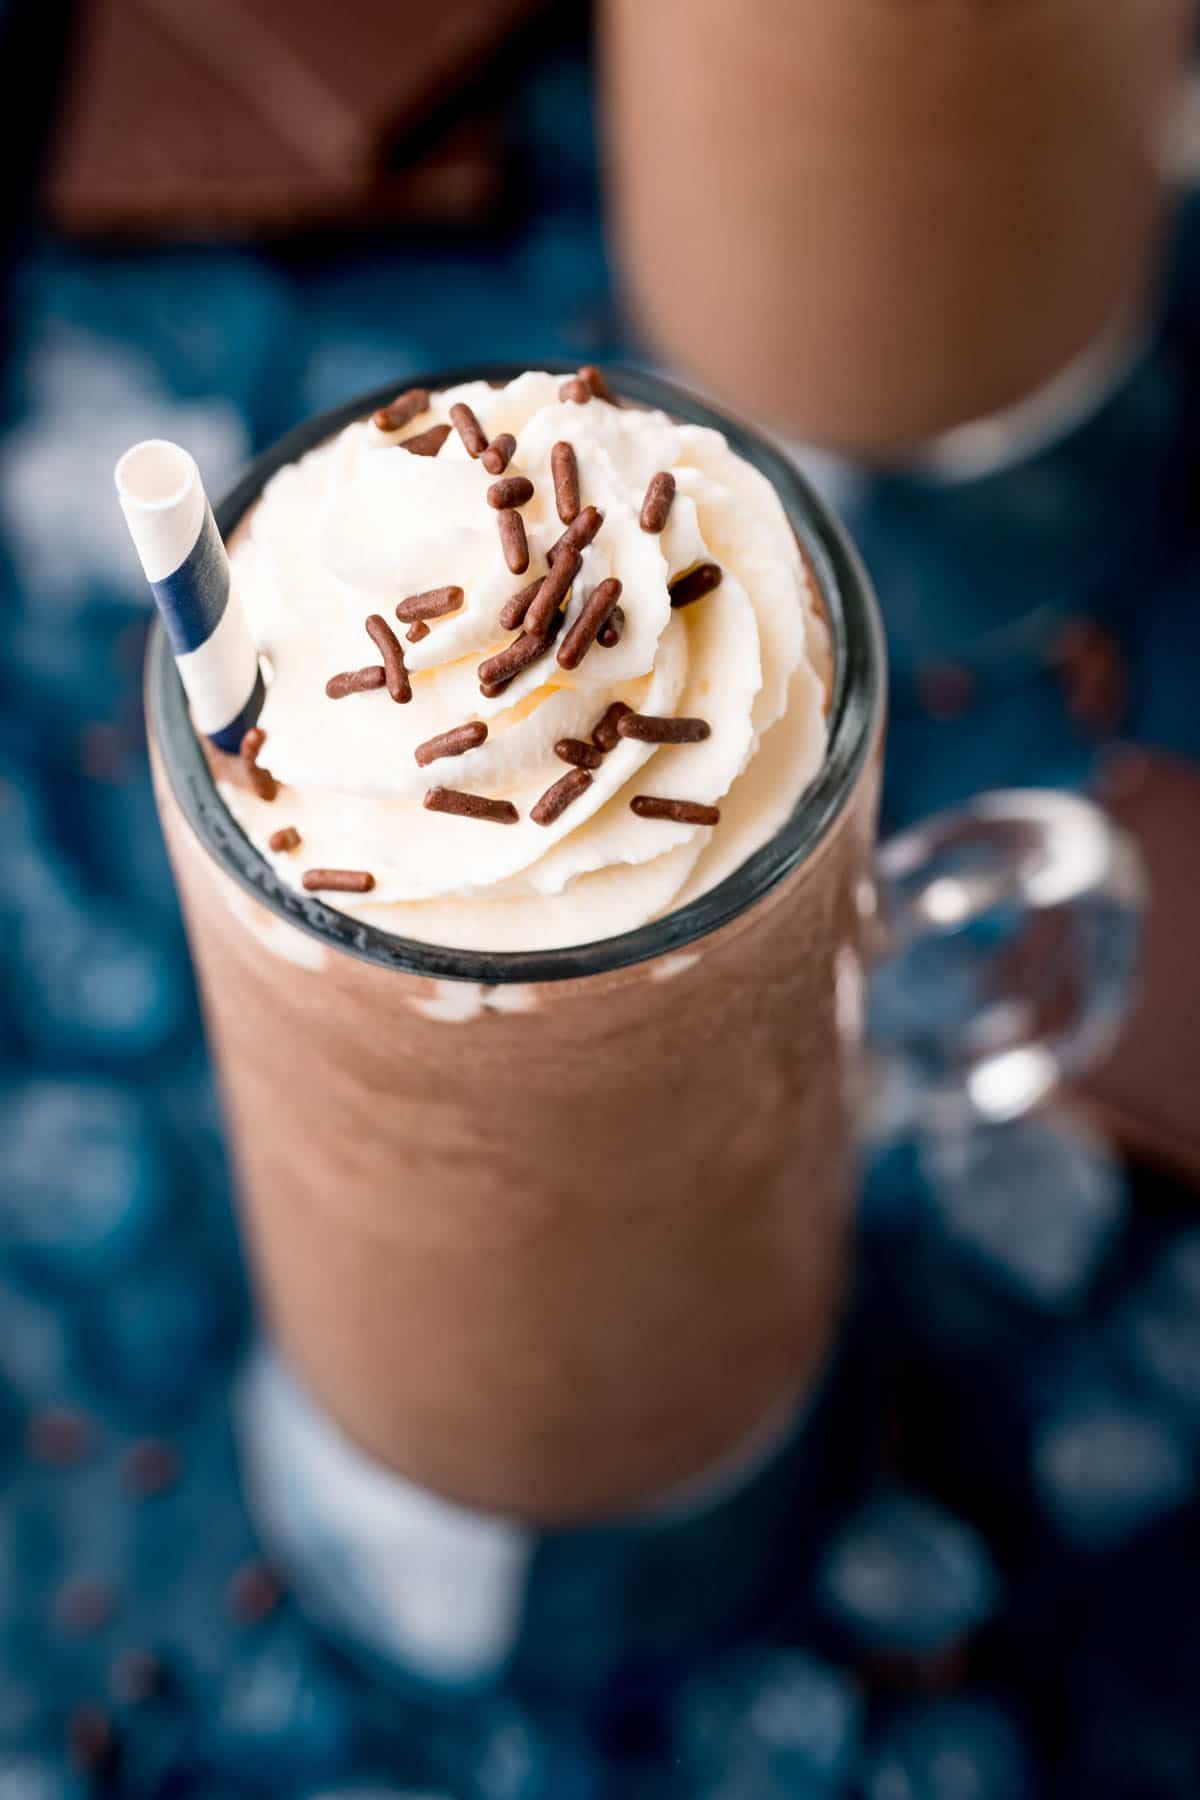 Frozen hot chocolate topped with whipped cream